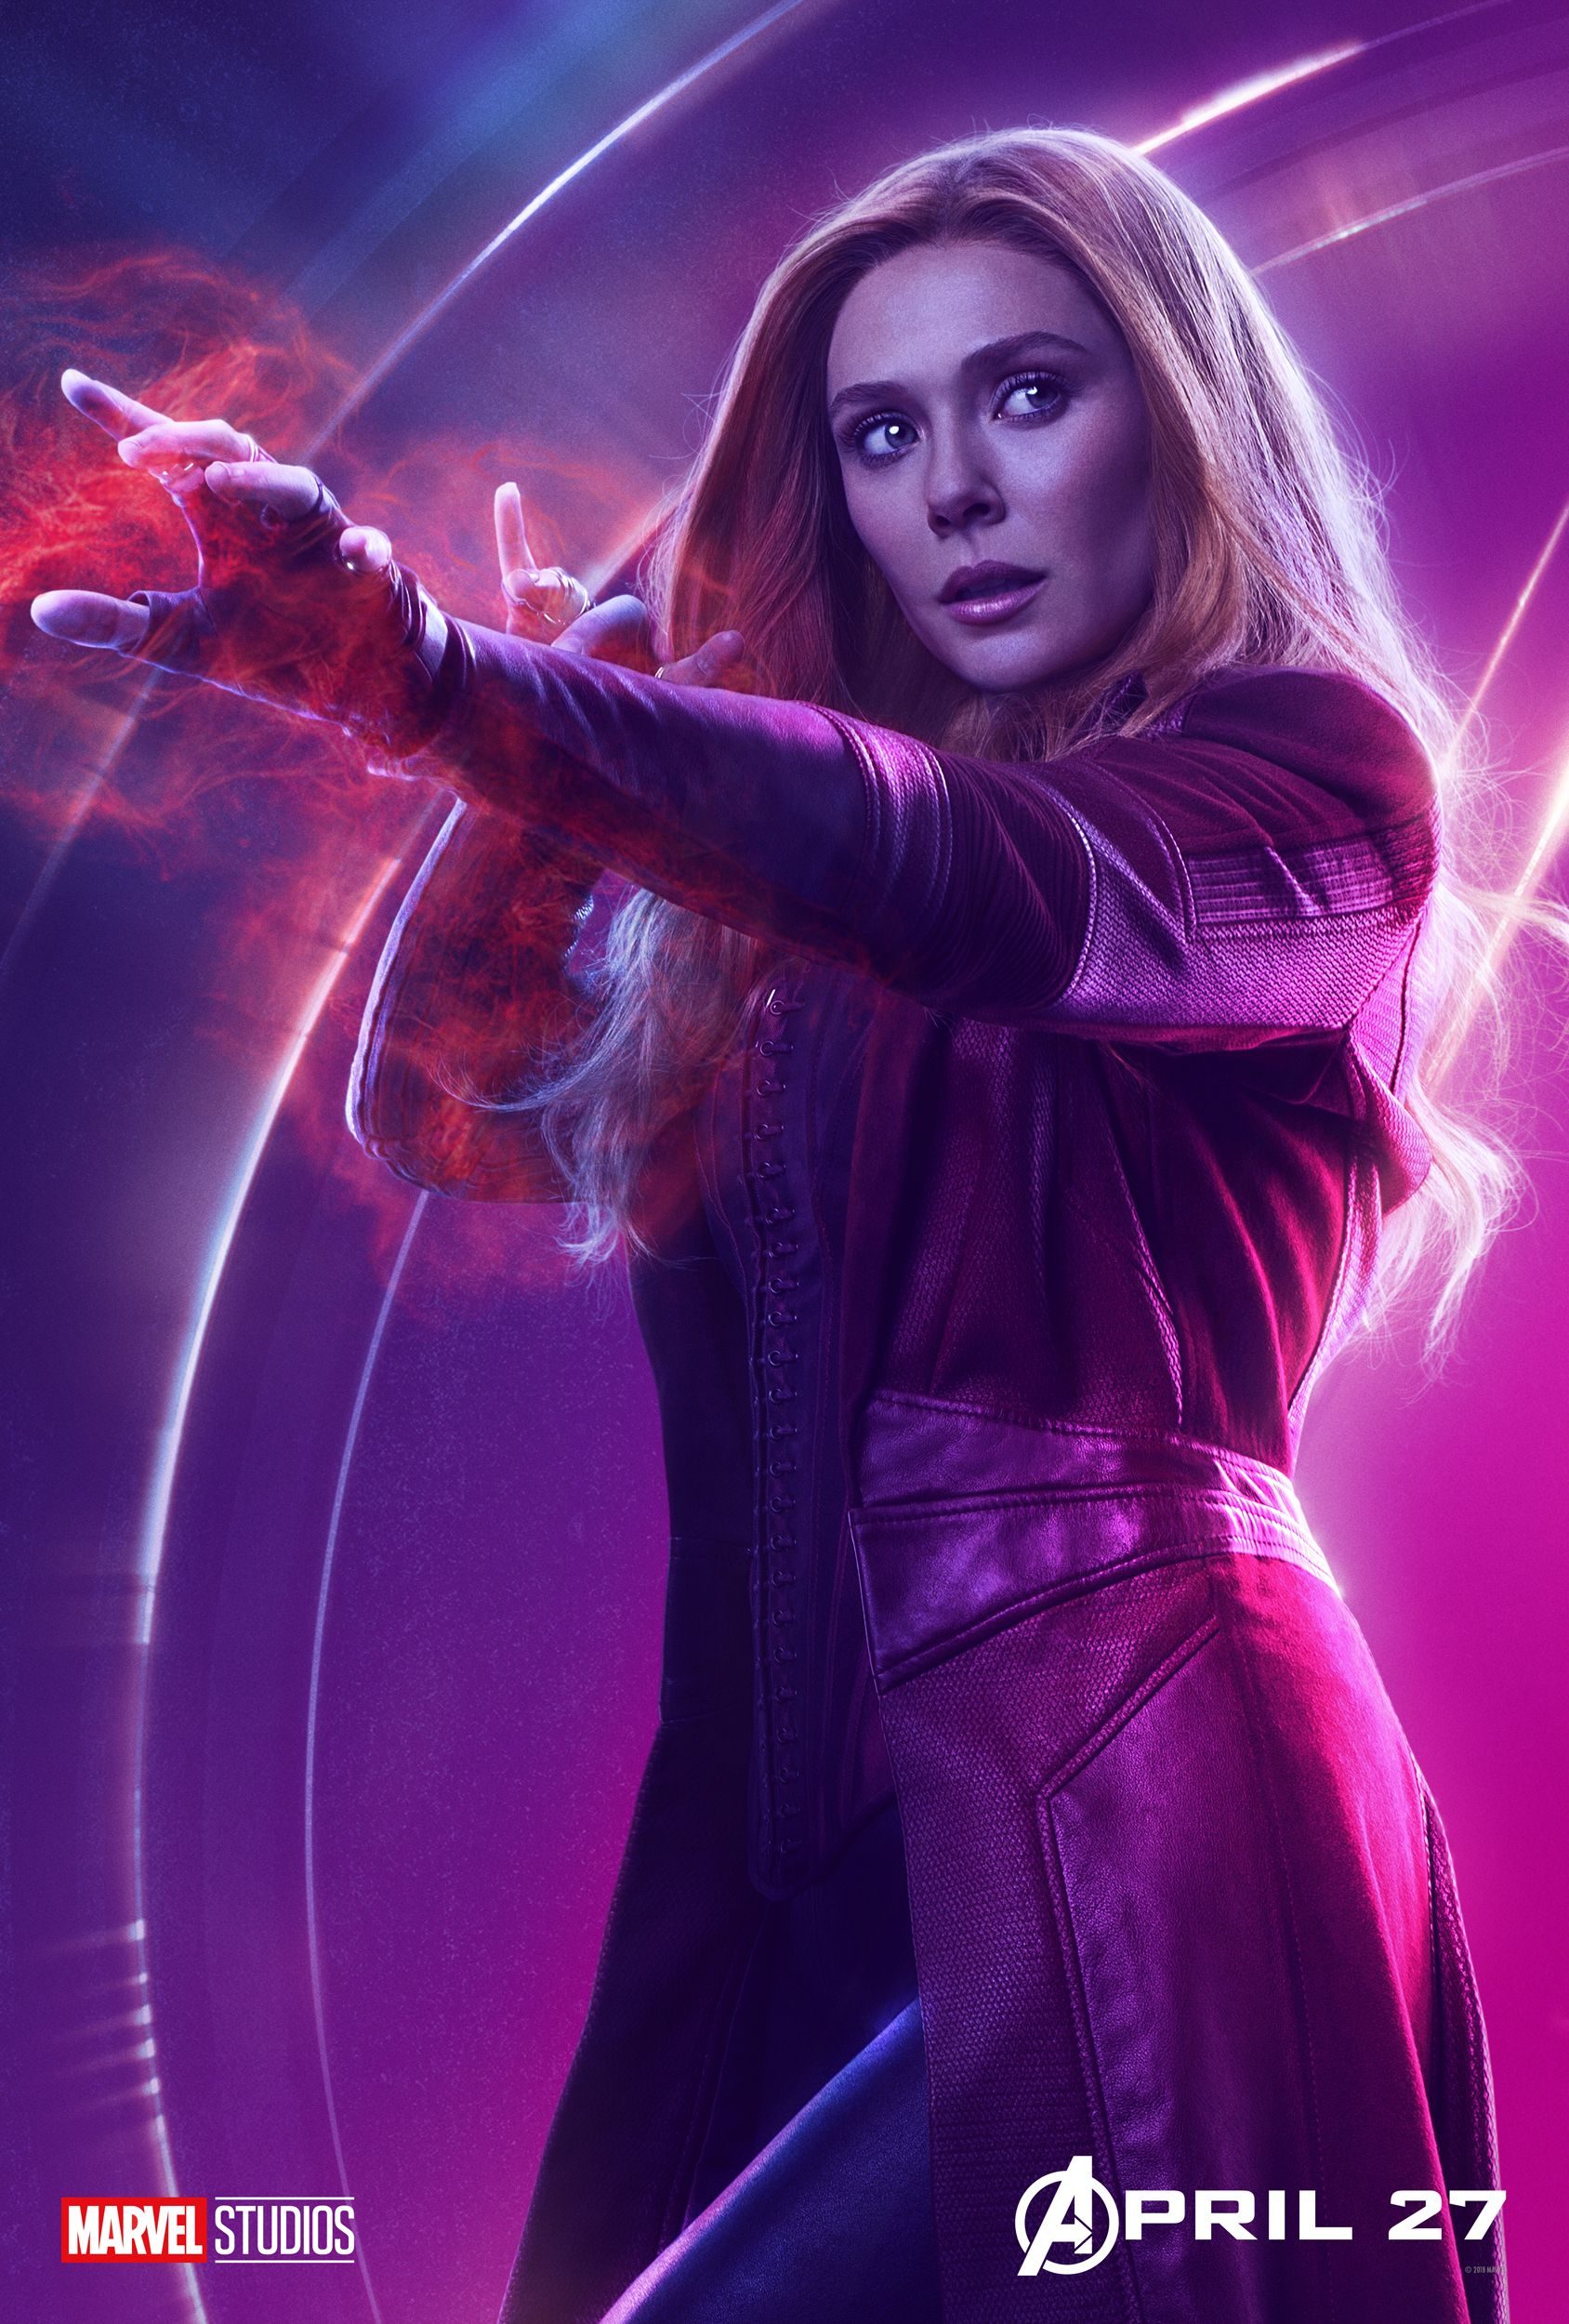 Elizabeth Olsen as Scarlet Witch in Avengers Infinity War